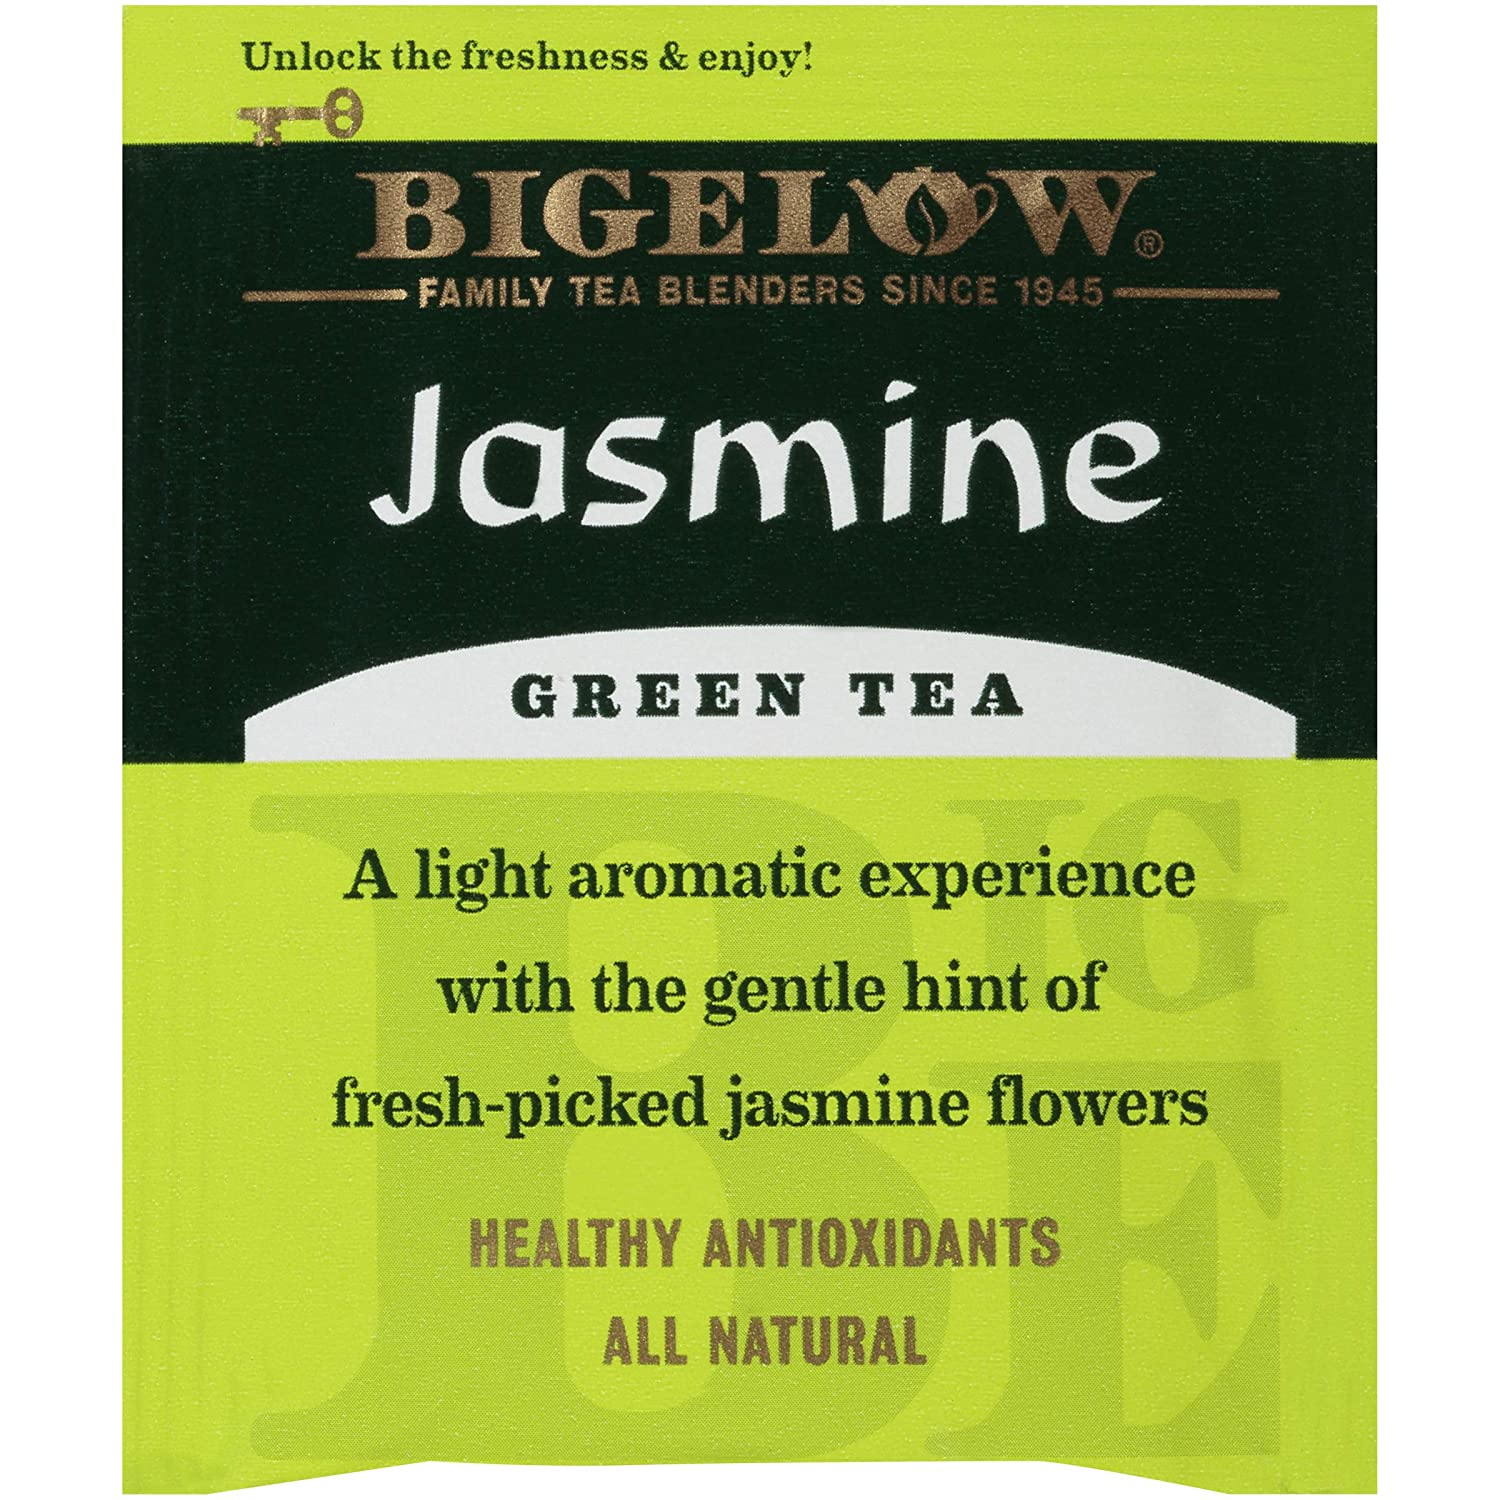 Bigelow Jasmine Green Tea Bags, 20 Count Box (Pack of 6) Caffeinated Green Tea, 120 Tea Bags Total